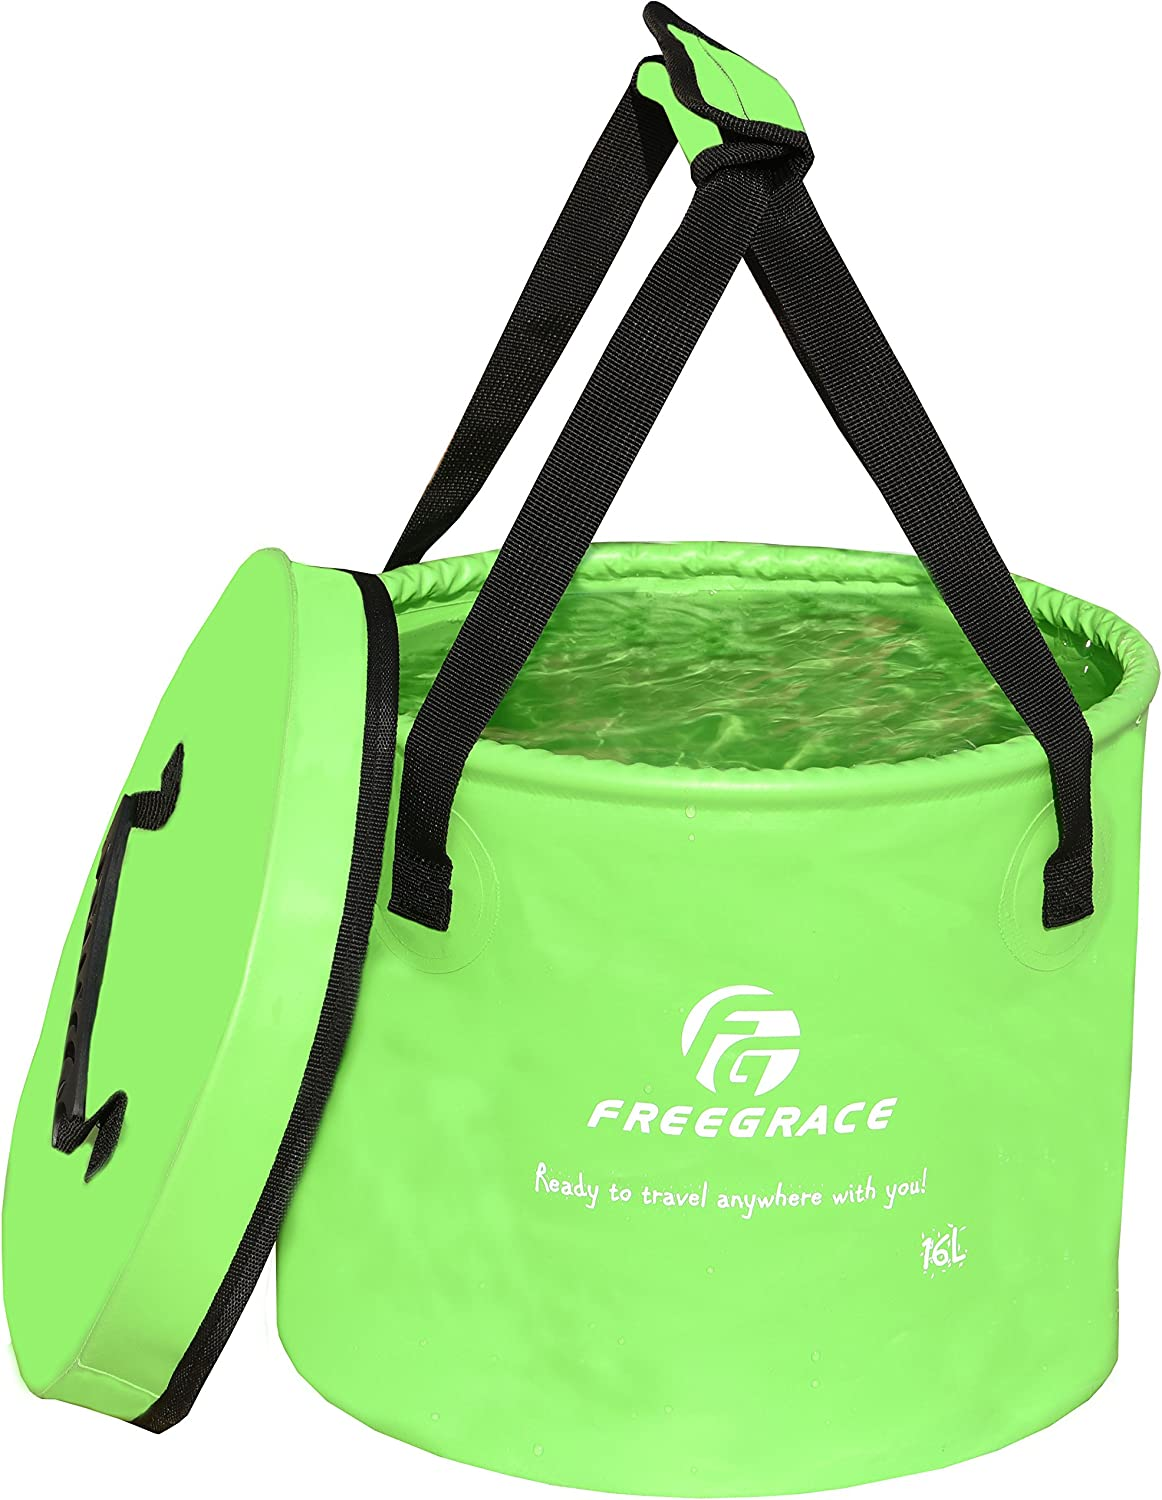 Freegrace Collapsible Bucket for Camping